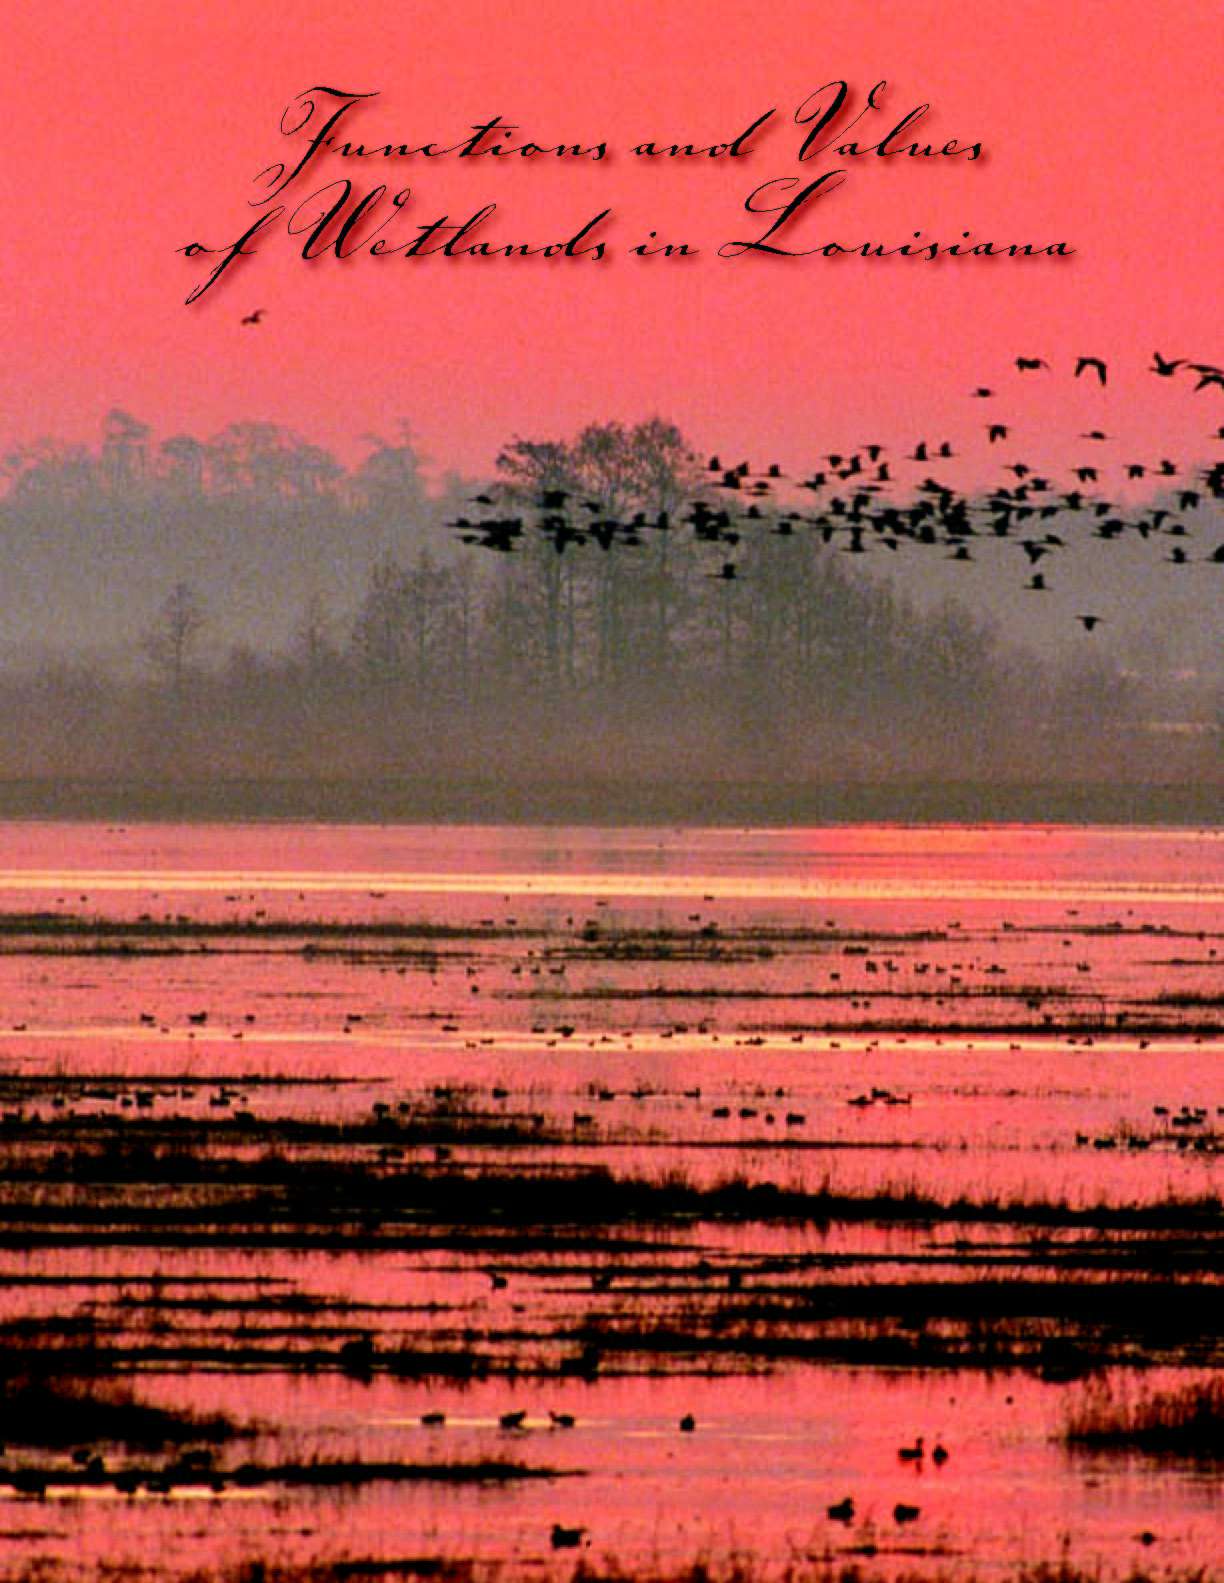 Functions and Values of Wetlands in Louisiana